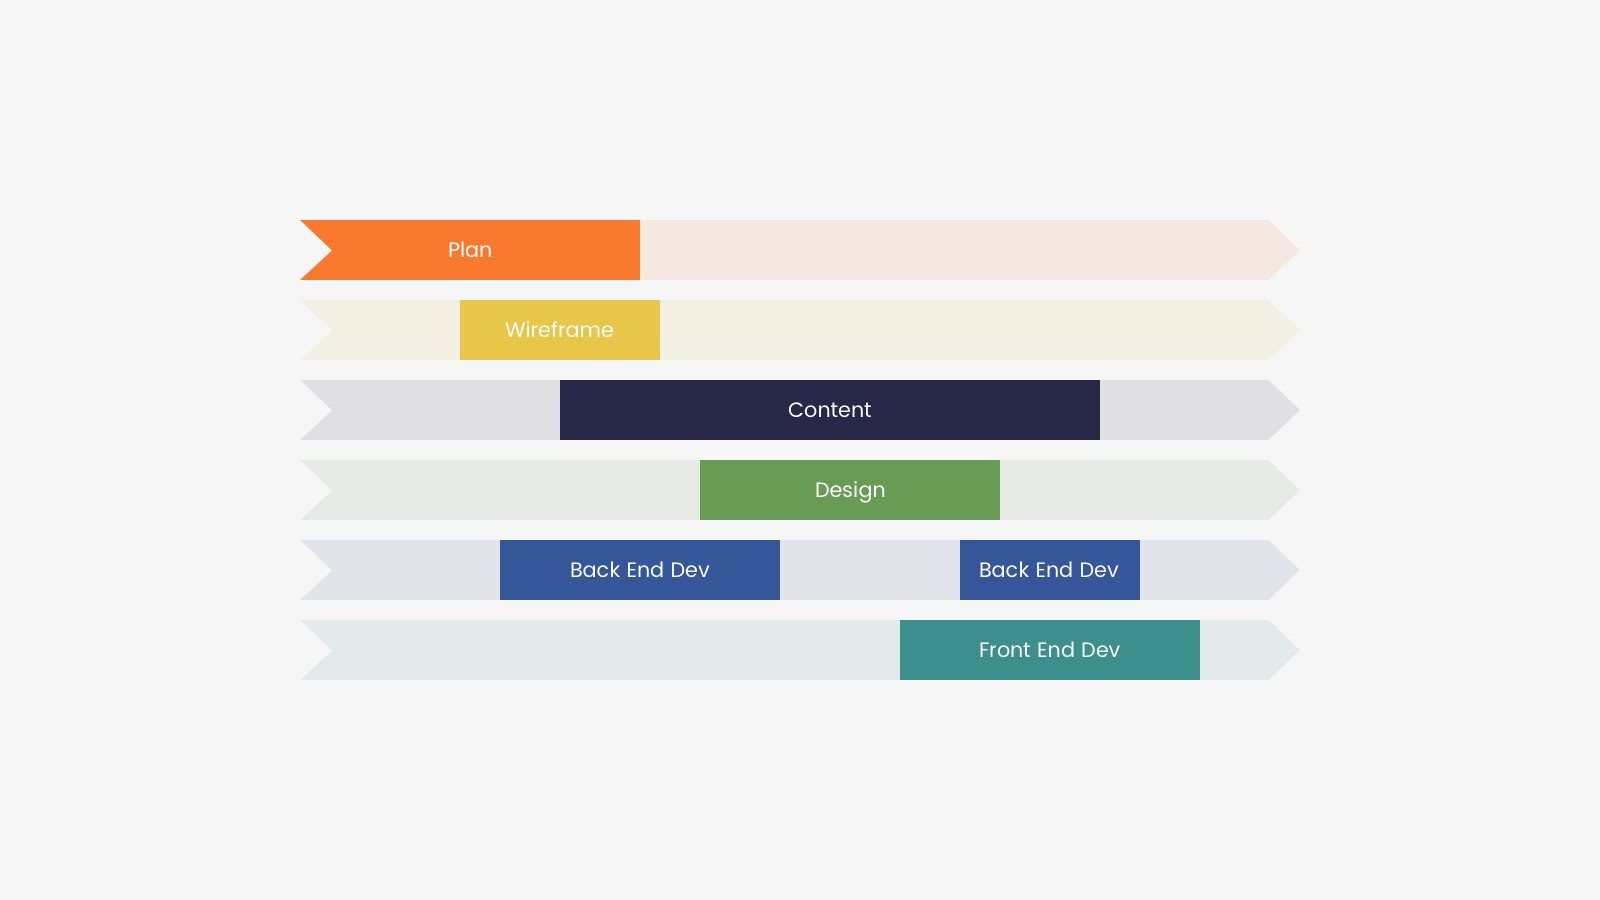 Agile project workflow using content as a service (CaaS)